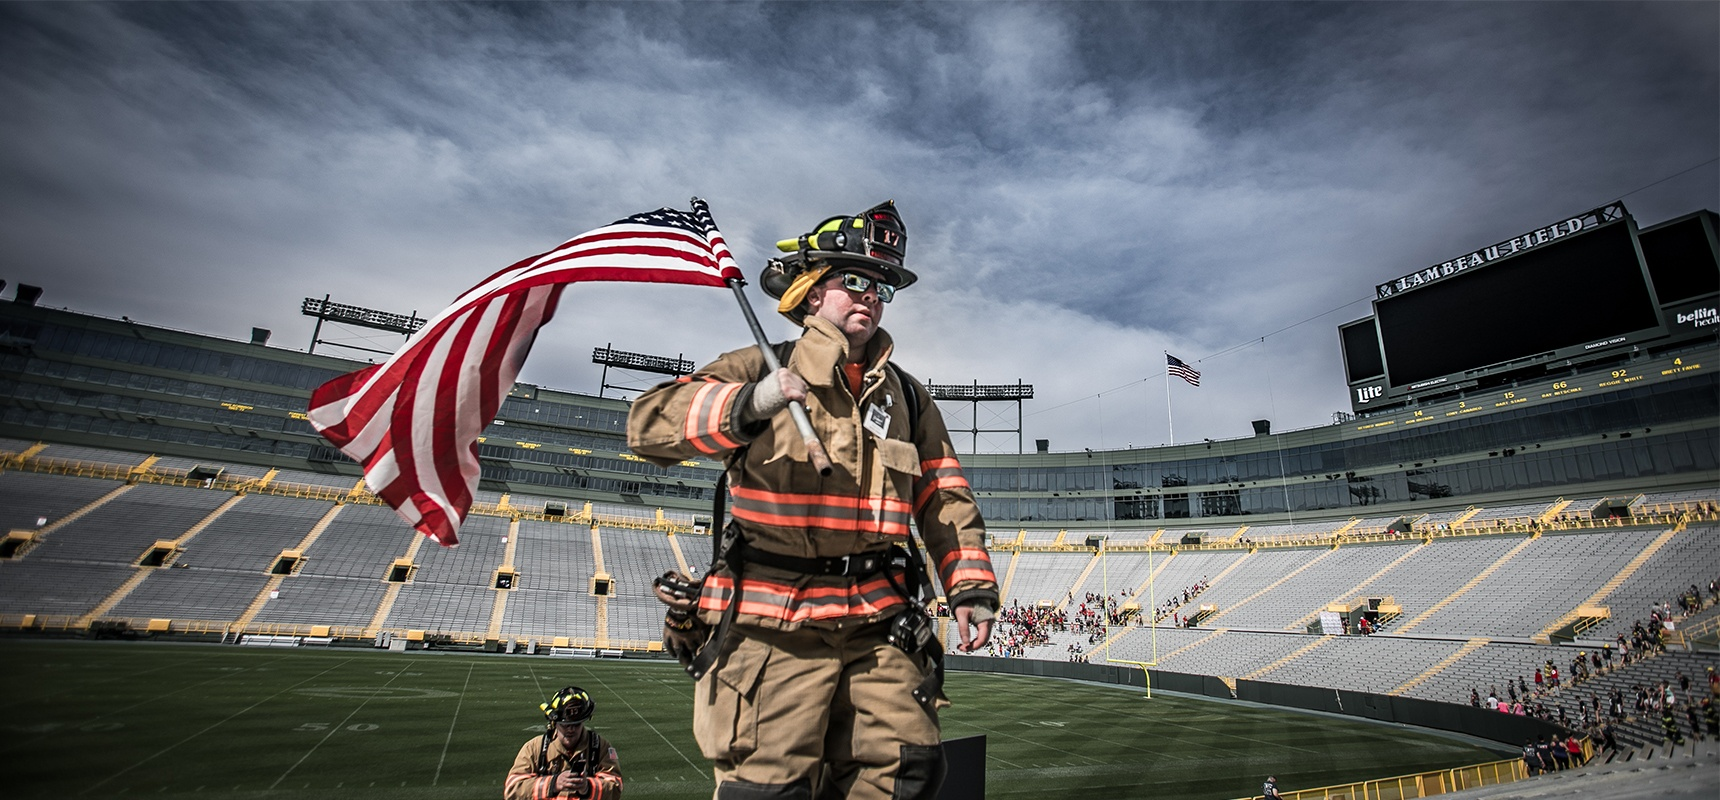 Registration Opens for Sixth Annual 9/11 Memorial Stair Climb at